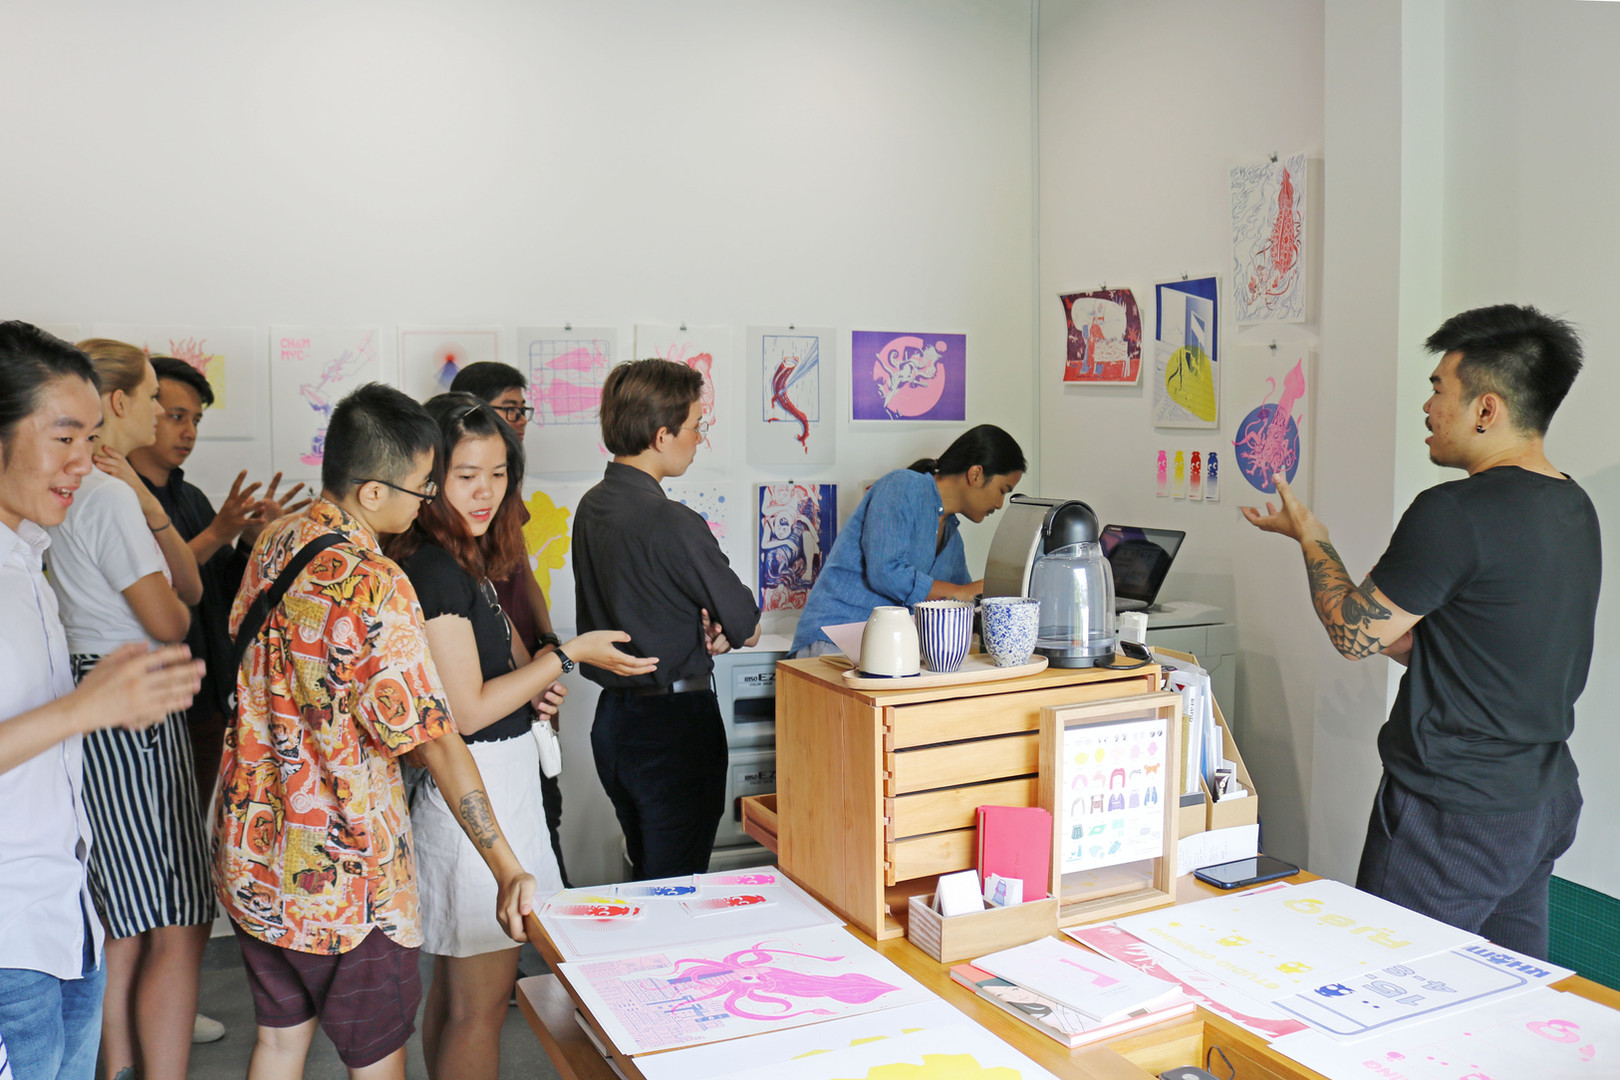 Risograph introduction